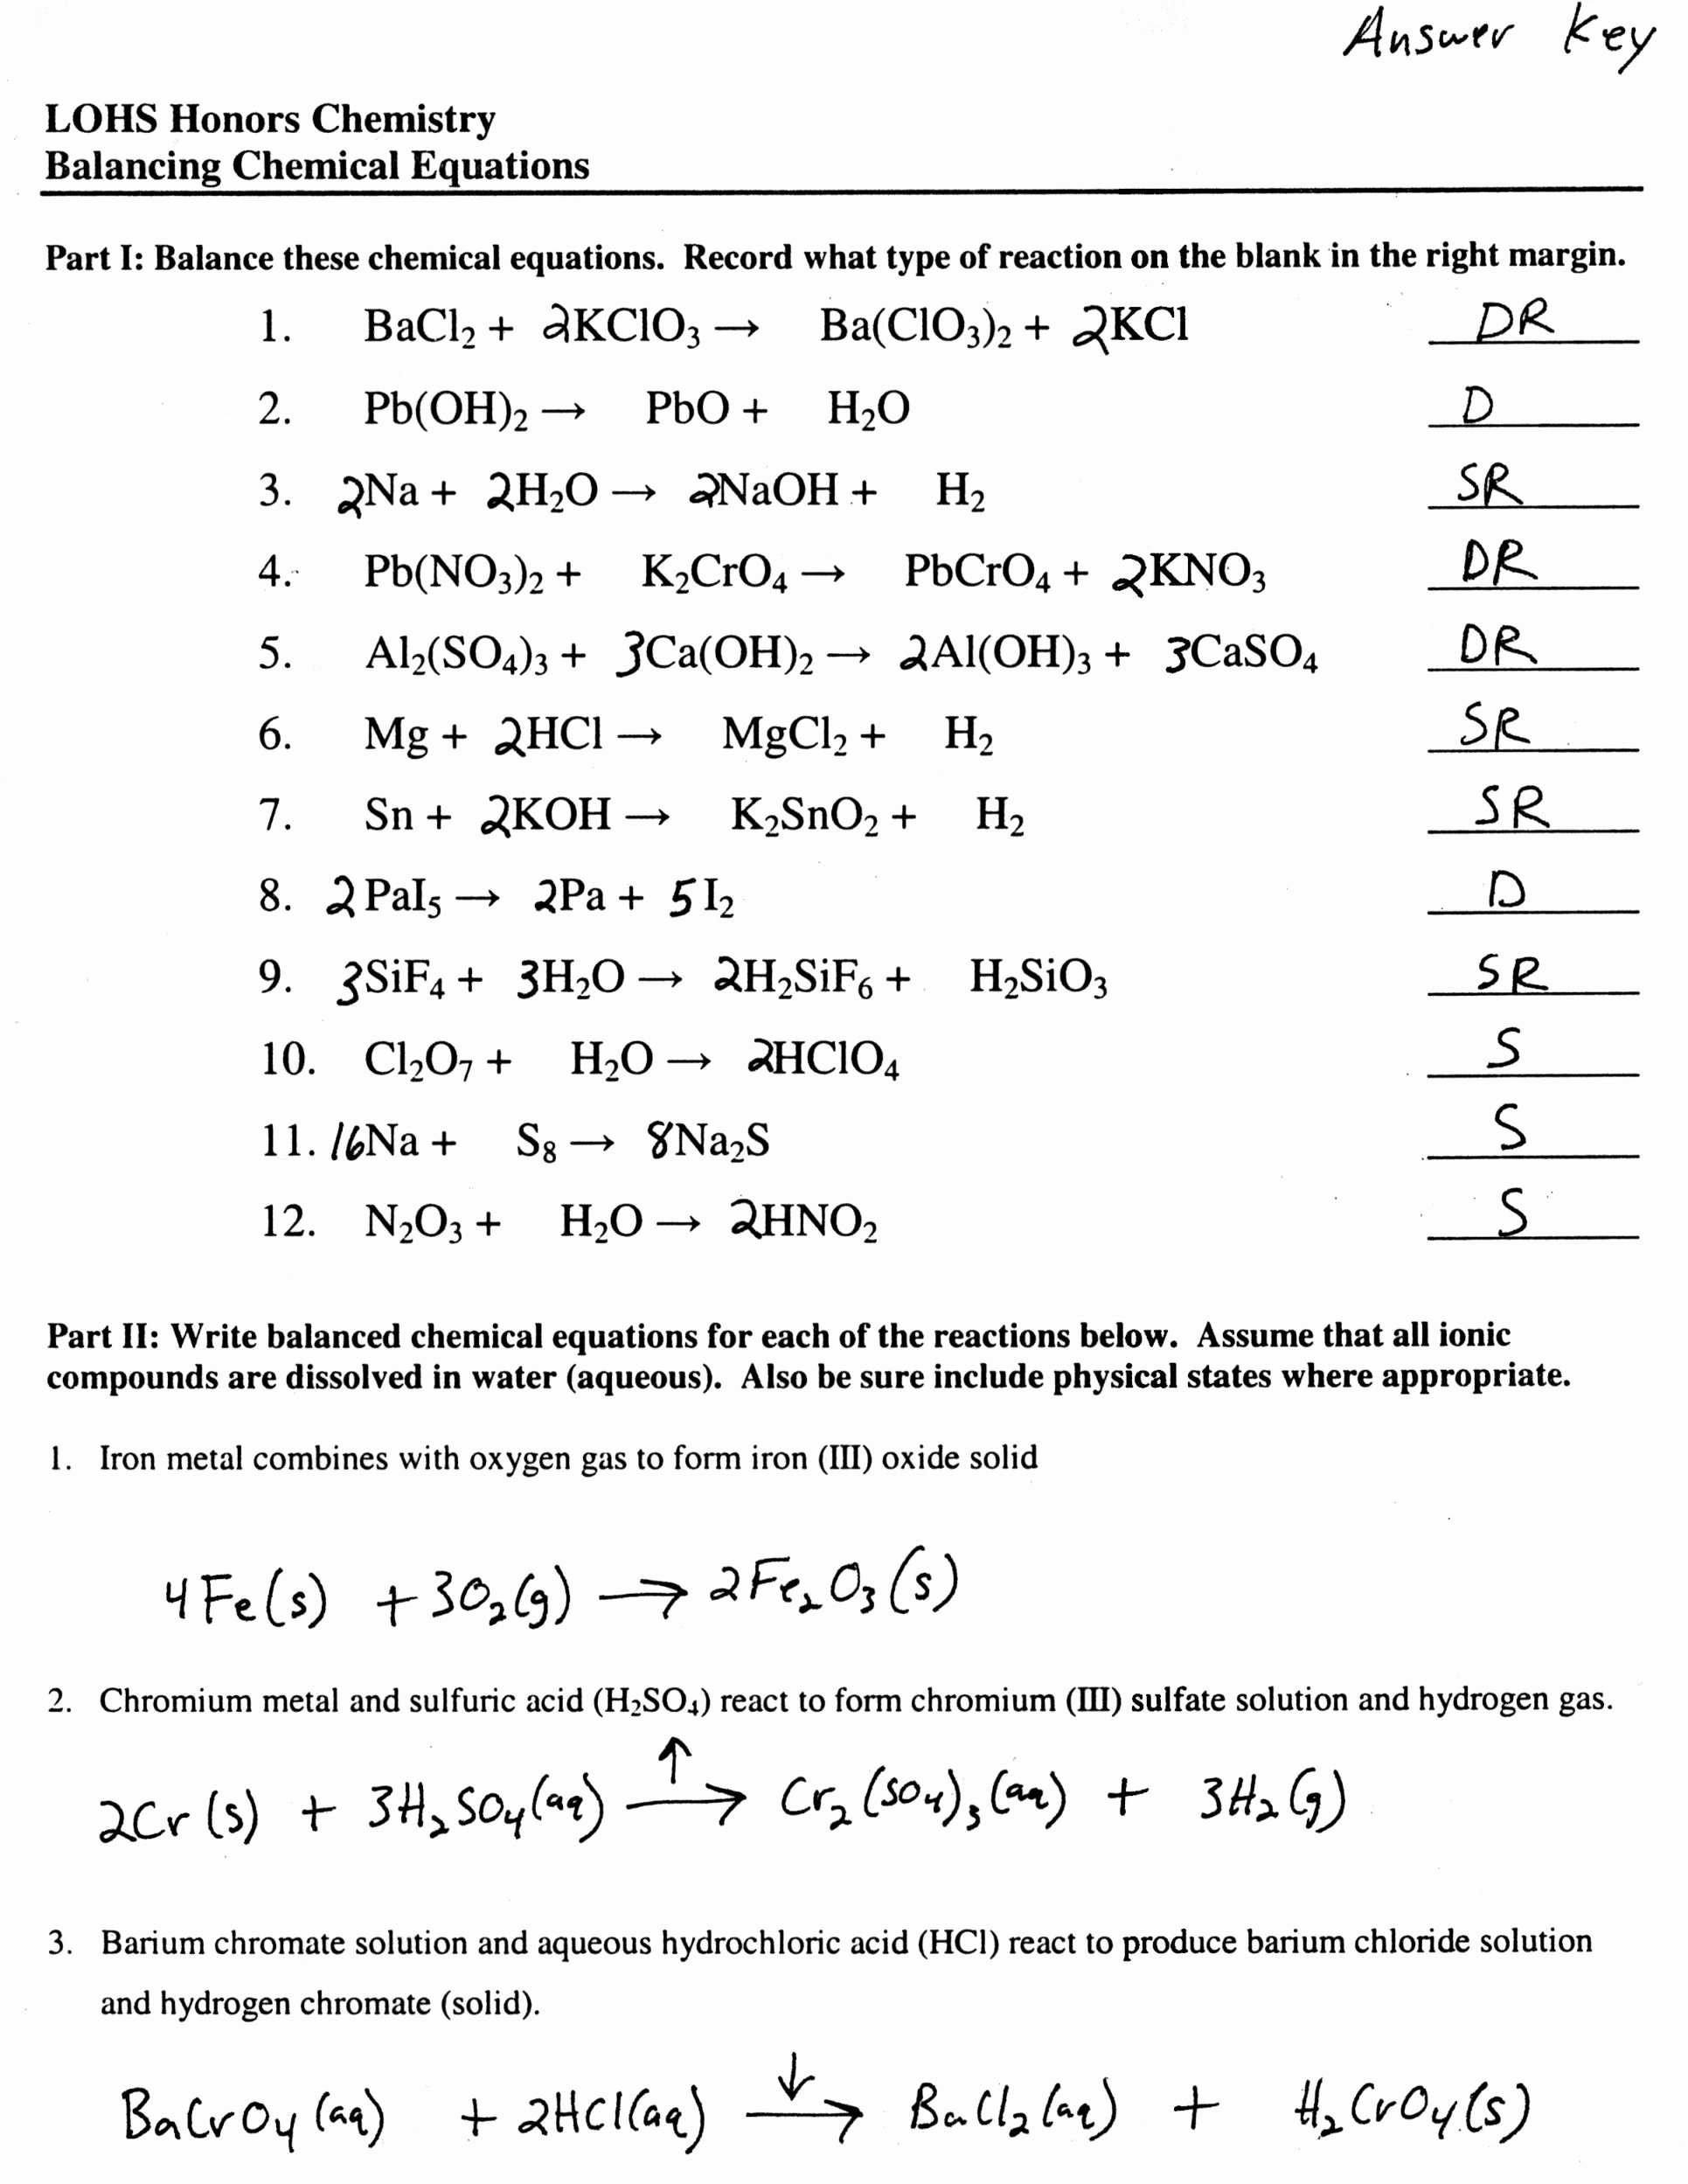 Balancing Nuclear Equations Worksheet New Balancing Nuclear Equations Worksheet